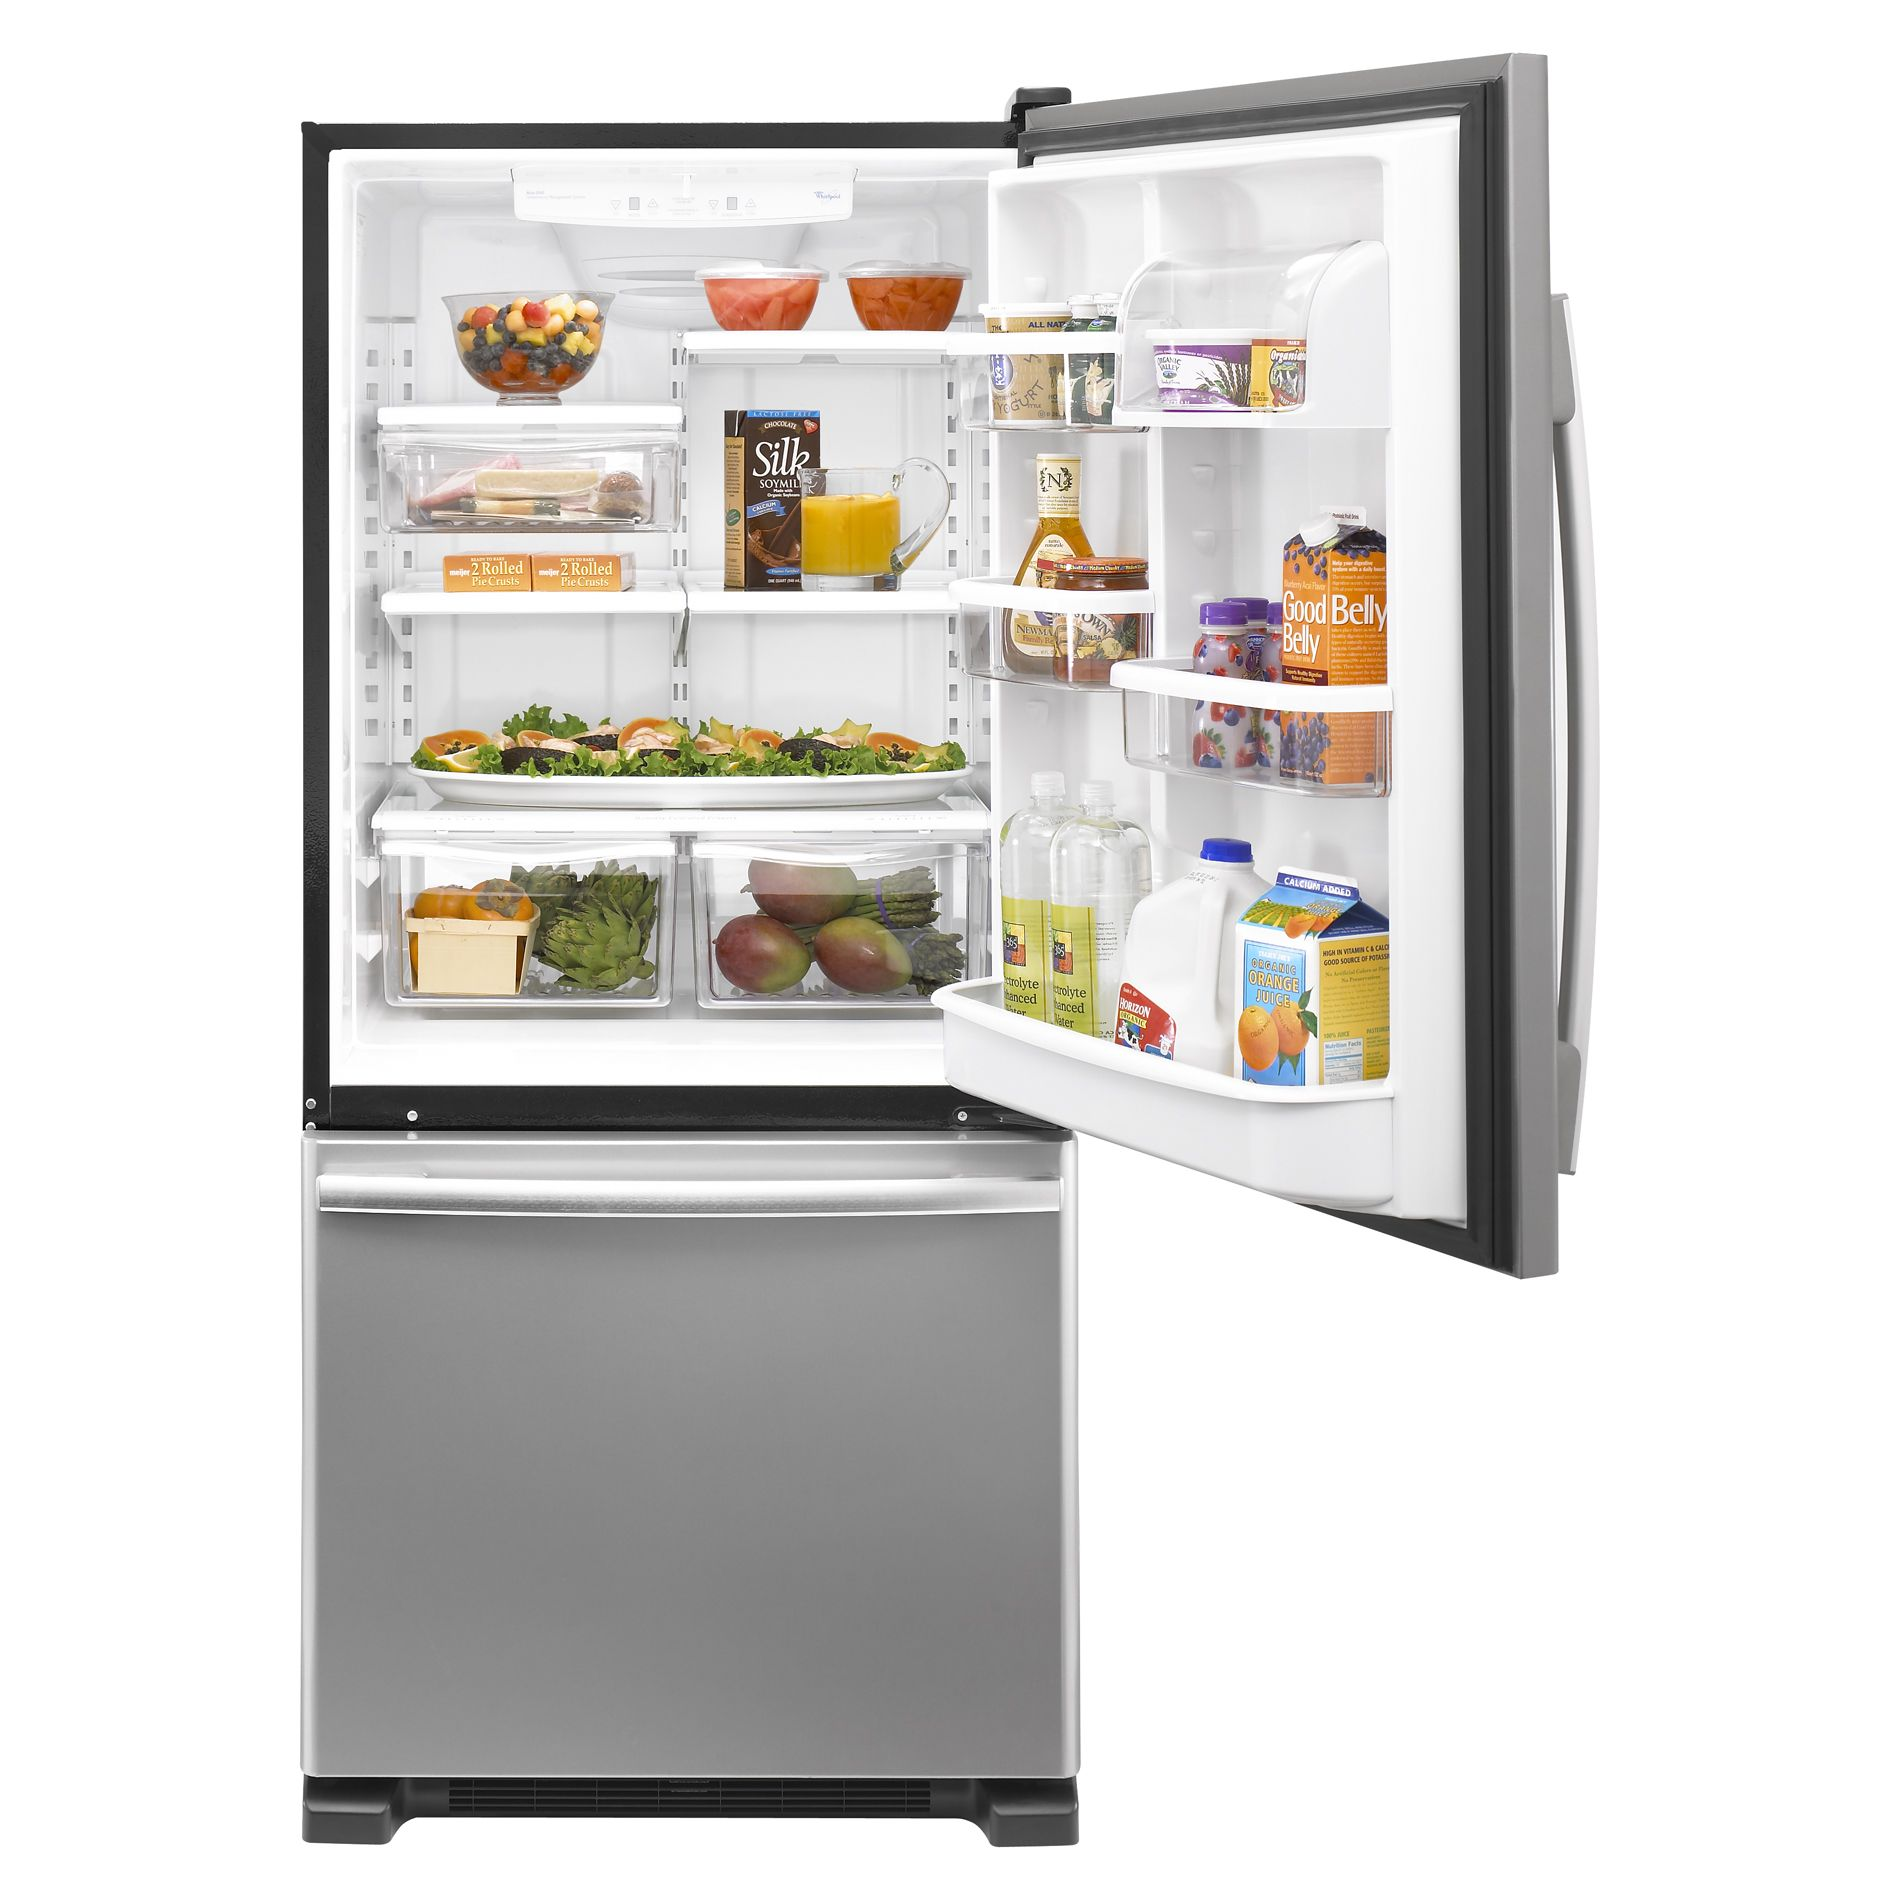 Whirlpool Gold 21.9 cu. ft. Single-Door Bottom-Freezer Refrigerator, Stainless Steel